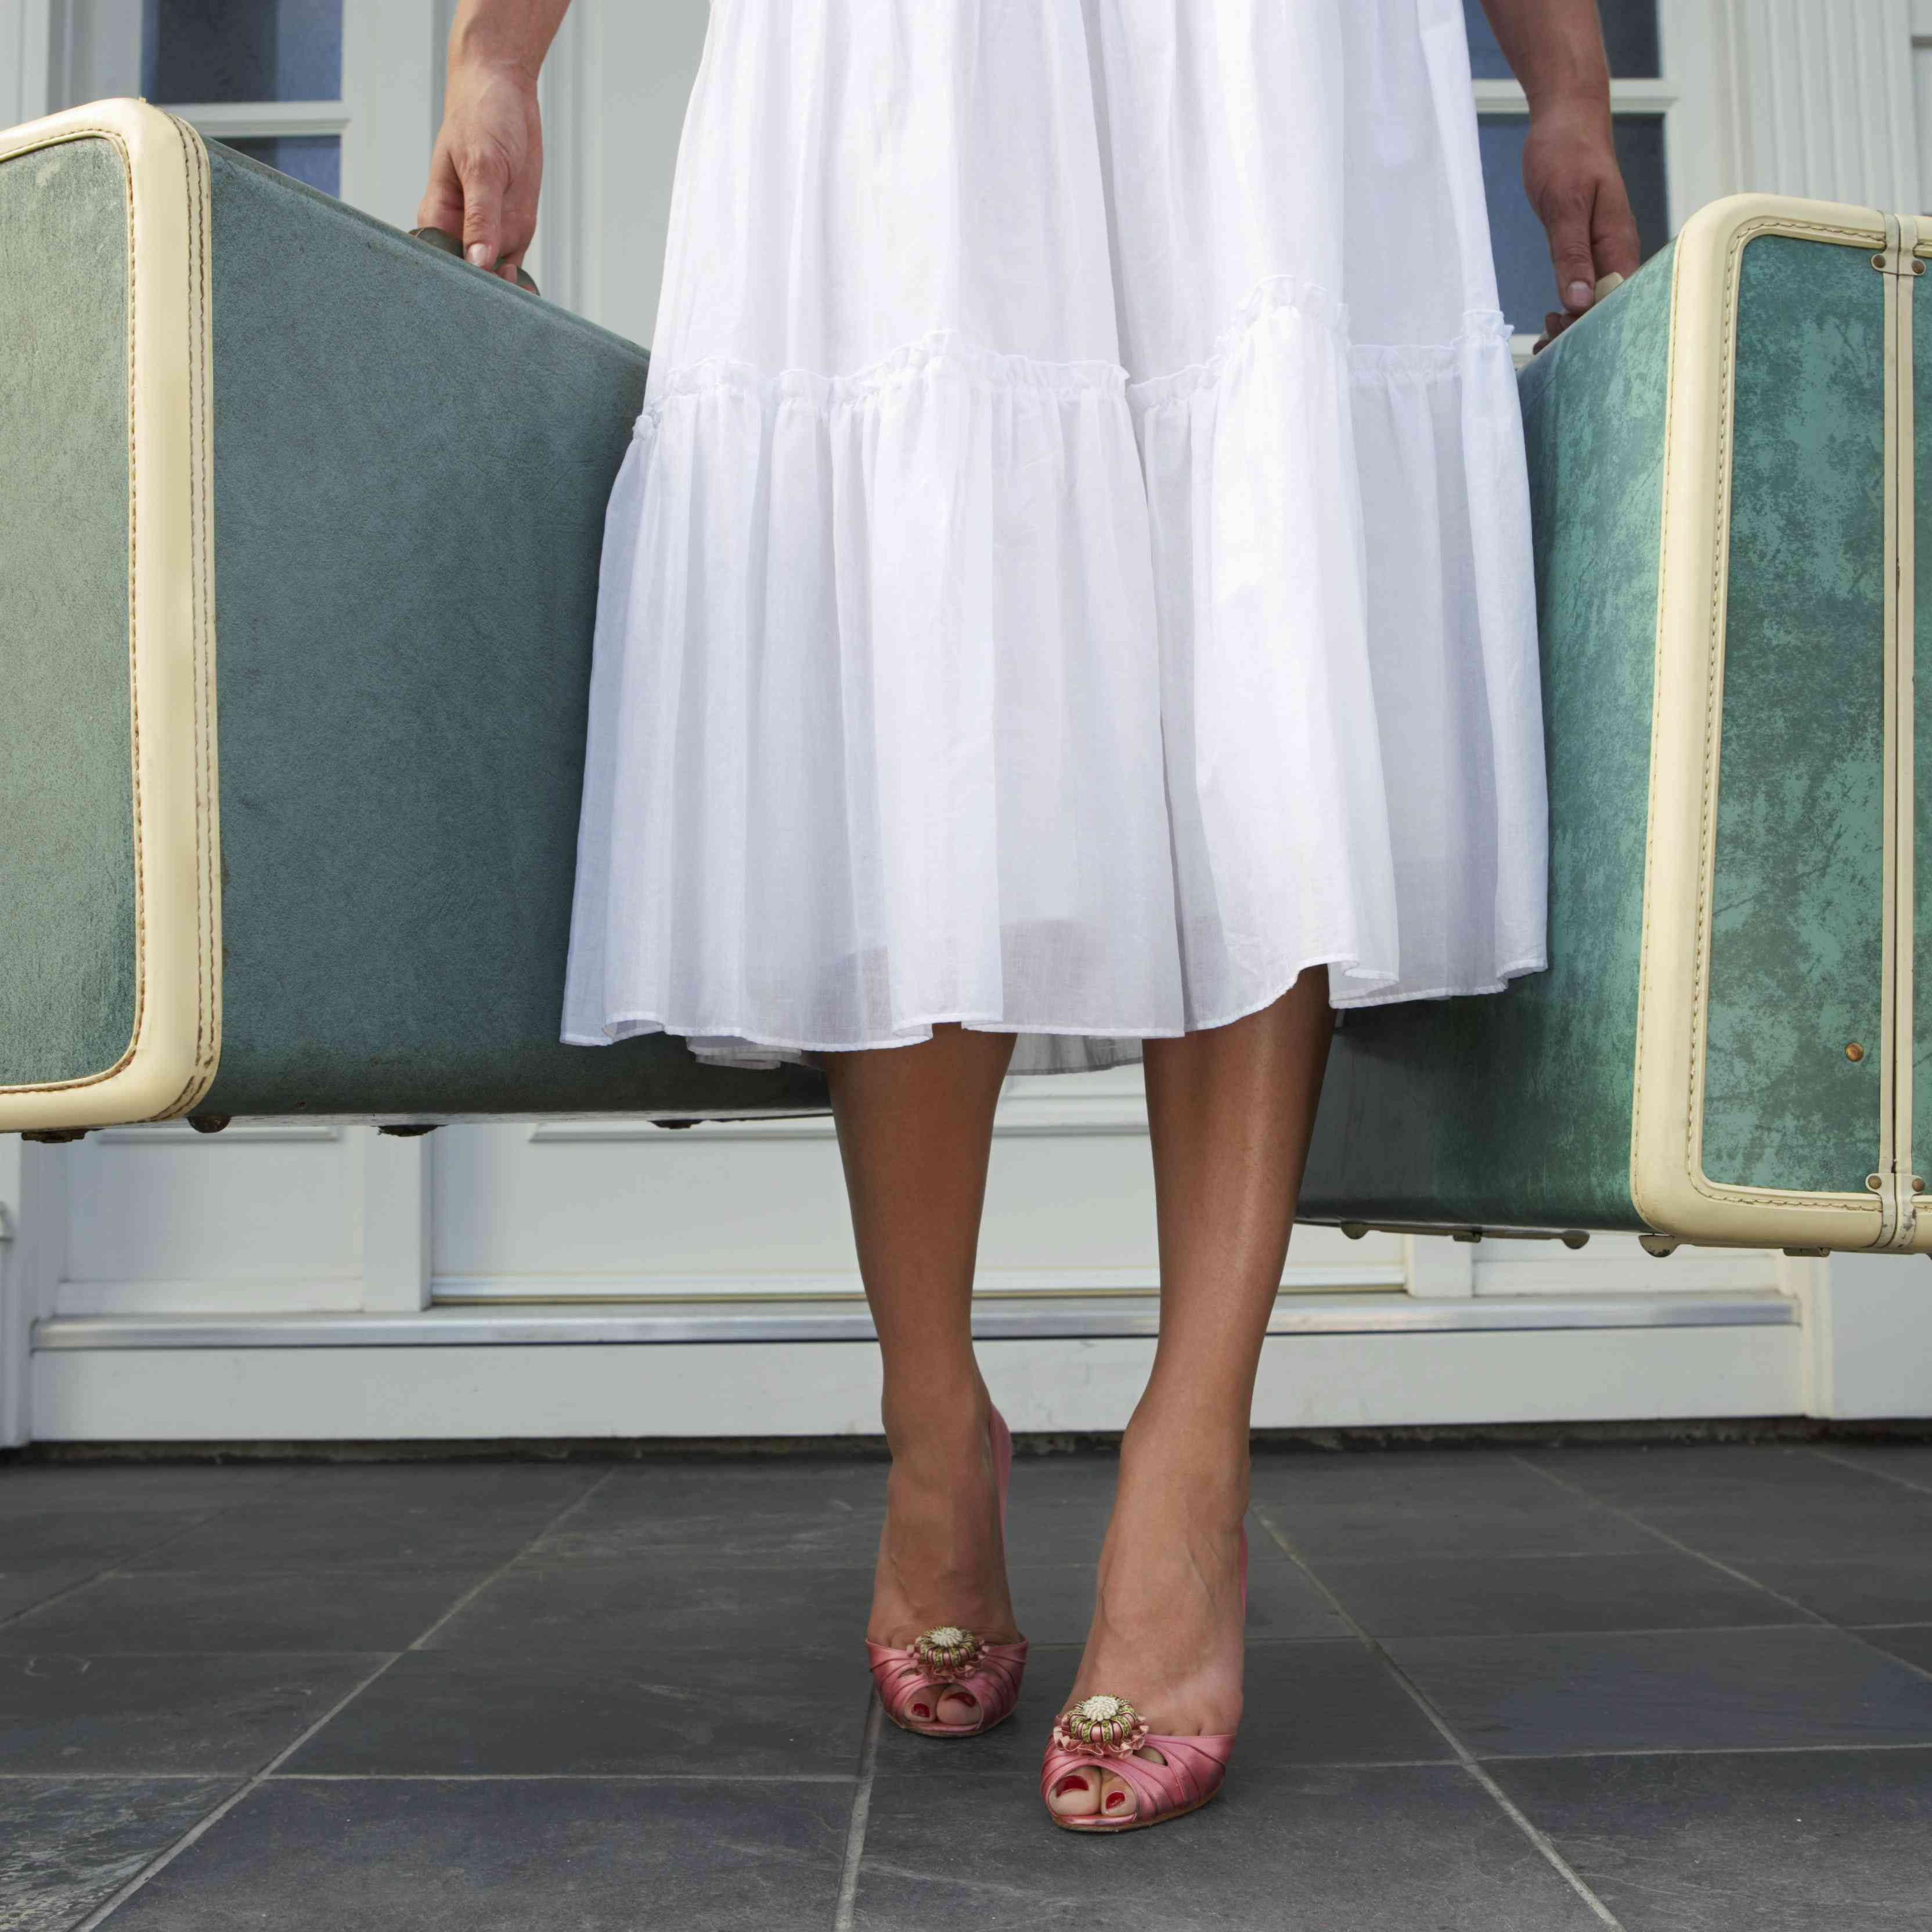 10 Things to Put on Your Honeymoon Packing List